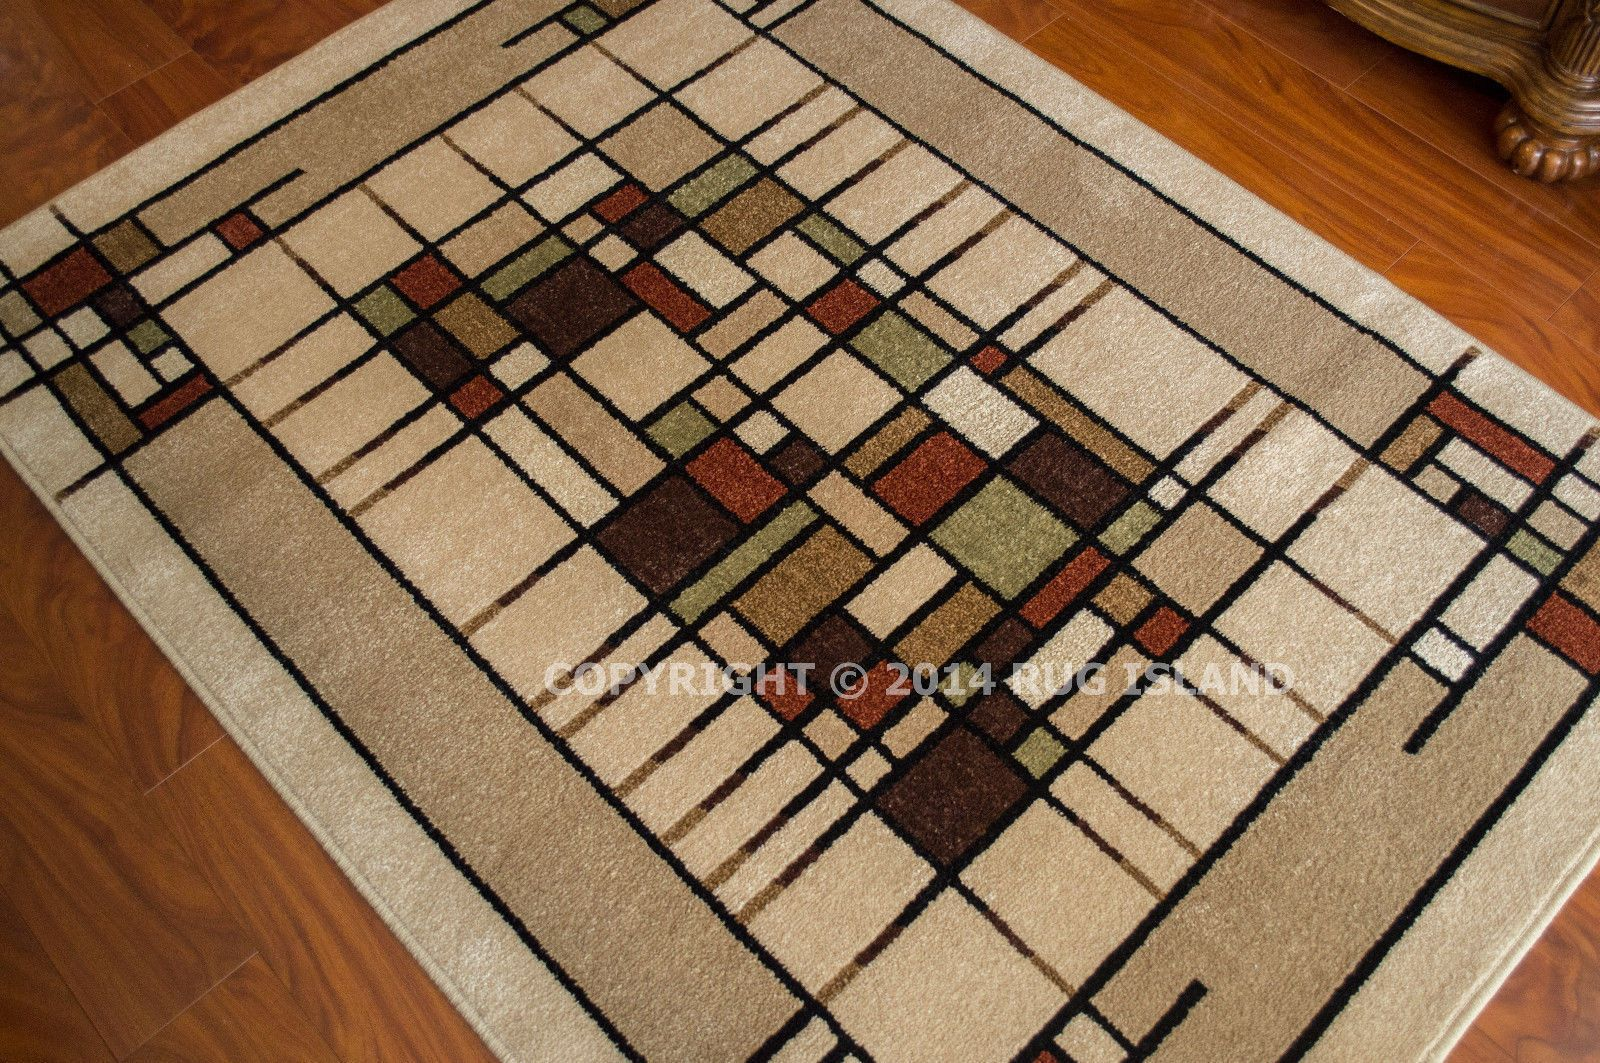 Arts Crafts Mission Style Indoor Outdoor Area Rug Free Shipping Area Rugs For Sale Indoor Outdoor Area Rugs Mission Style